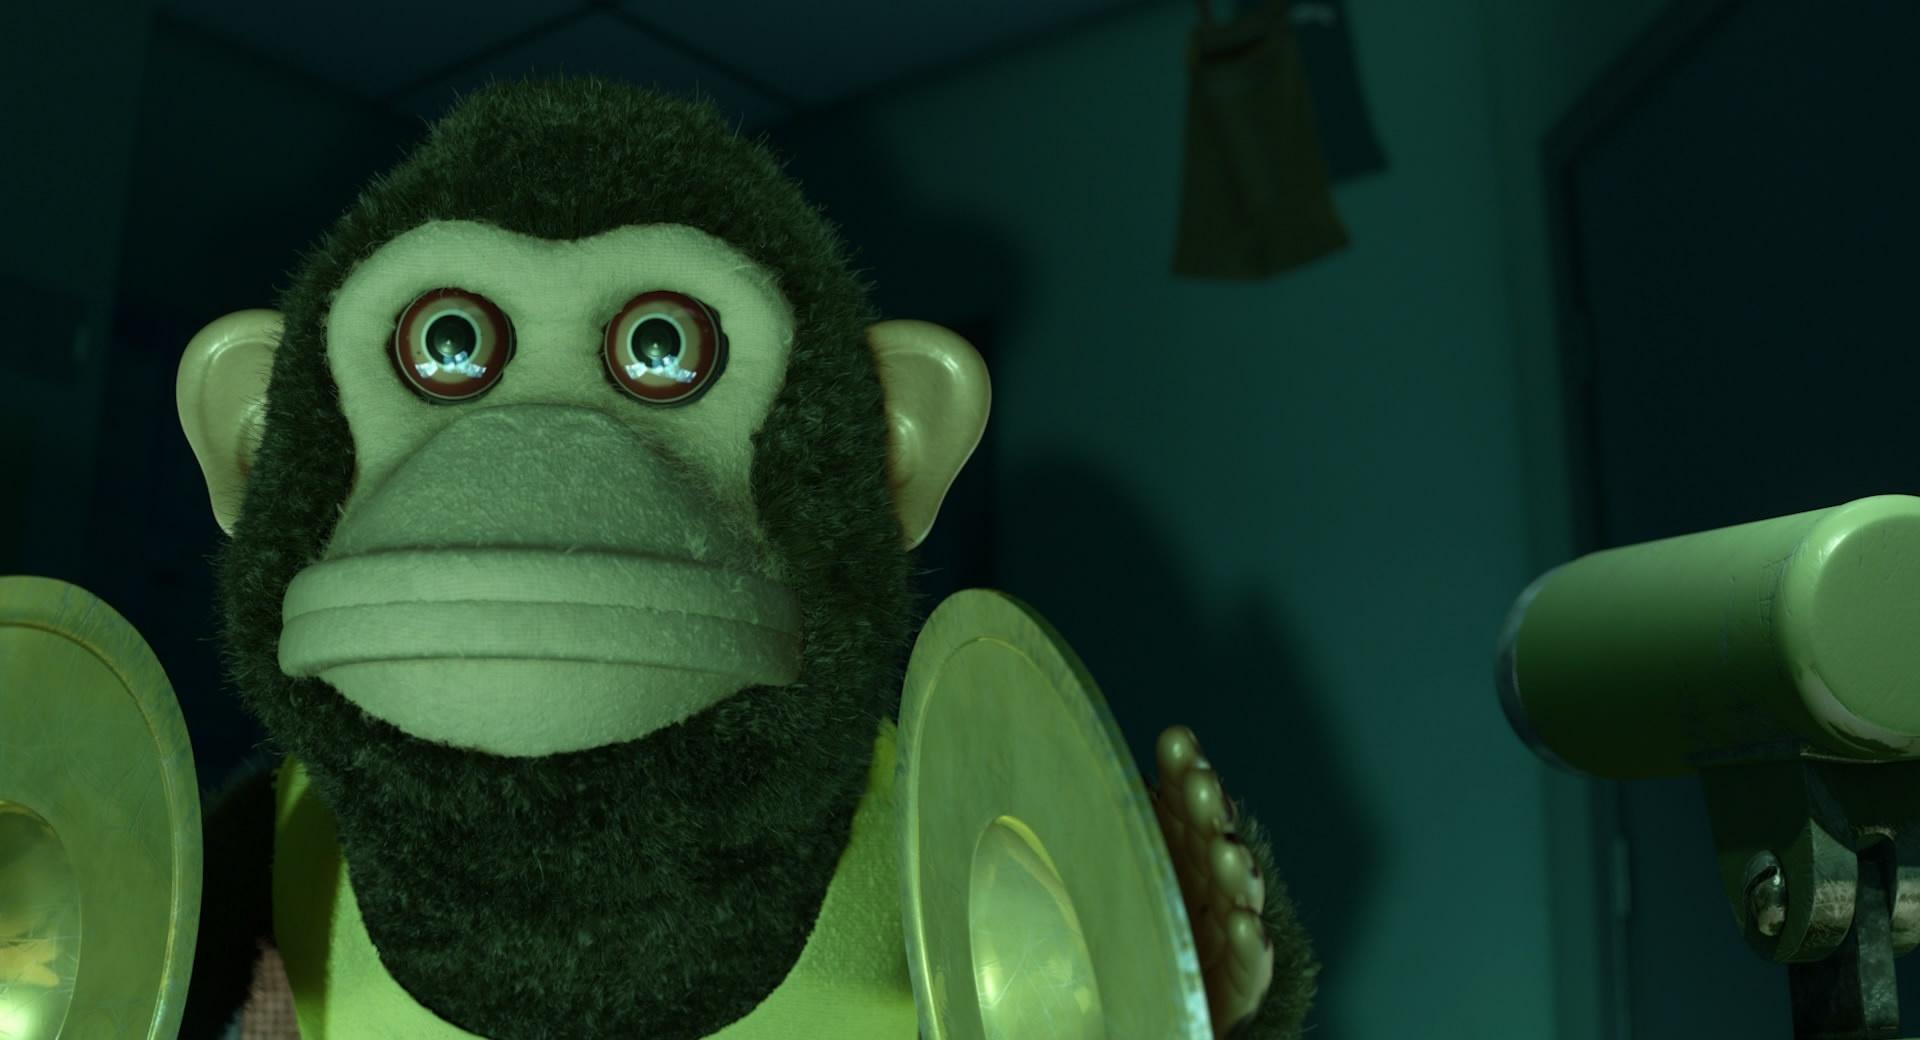 Toy Story 3 Monkey Scary at 1280 x 960 size wallpapers HD quality